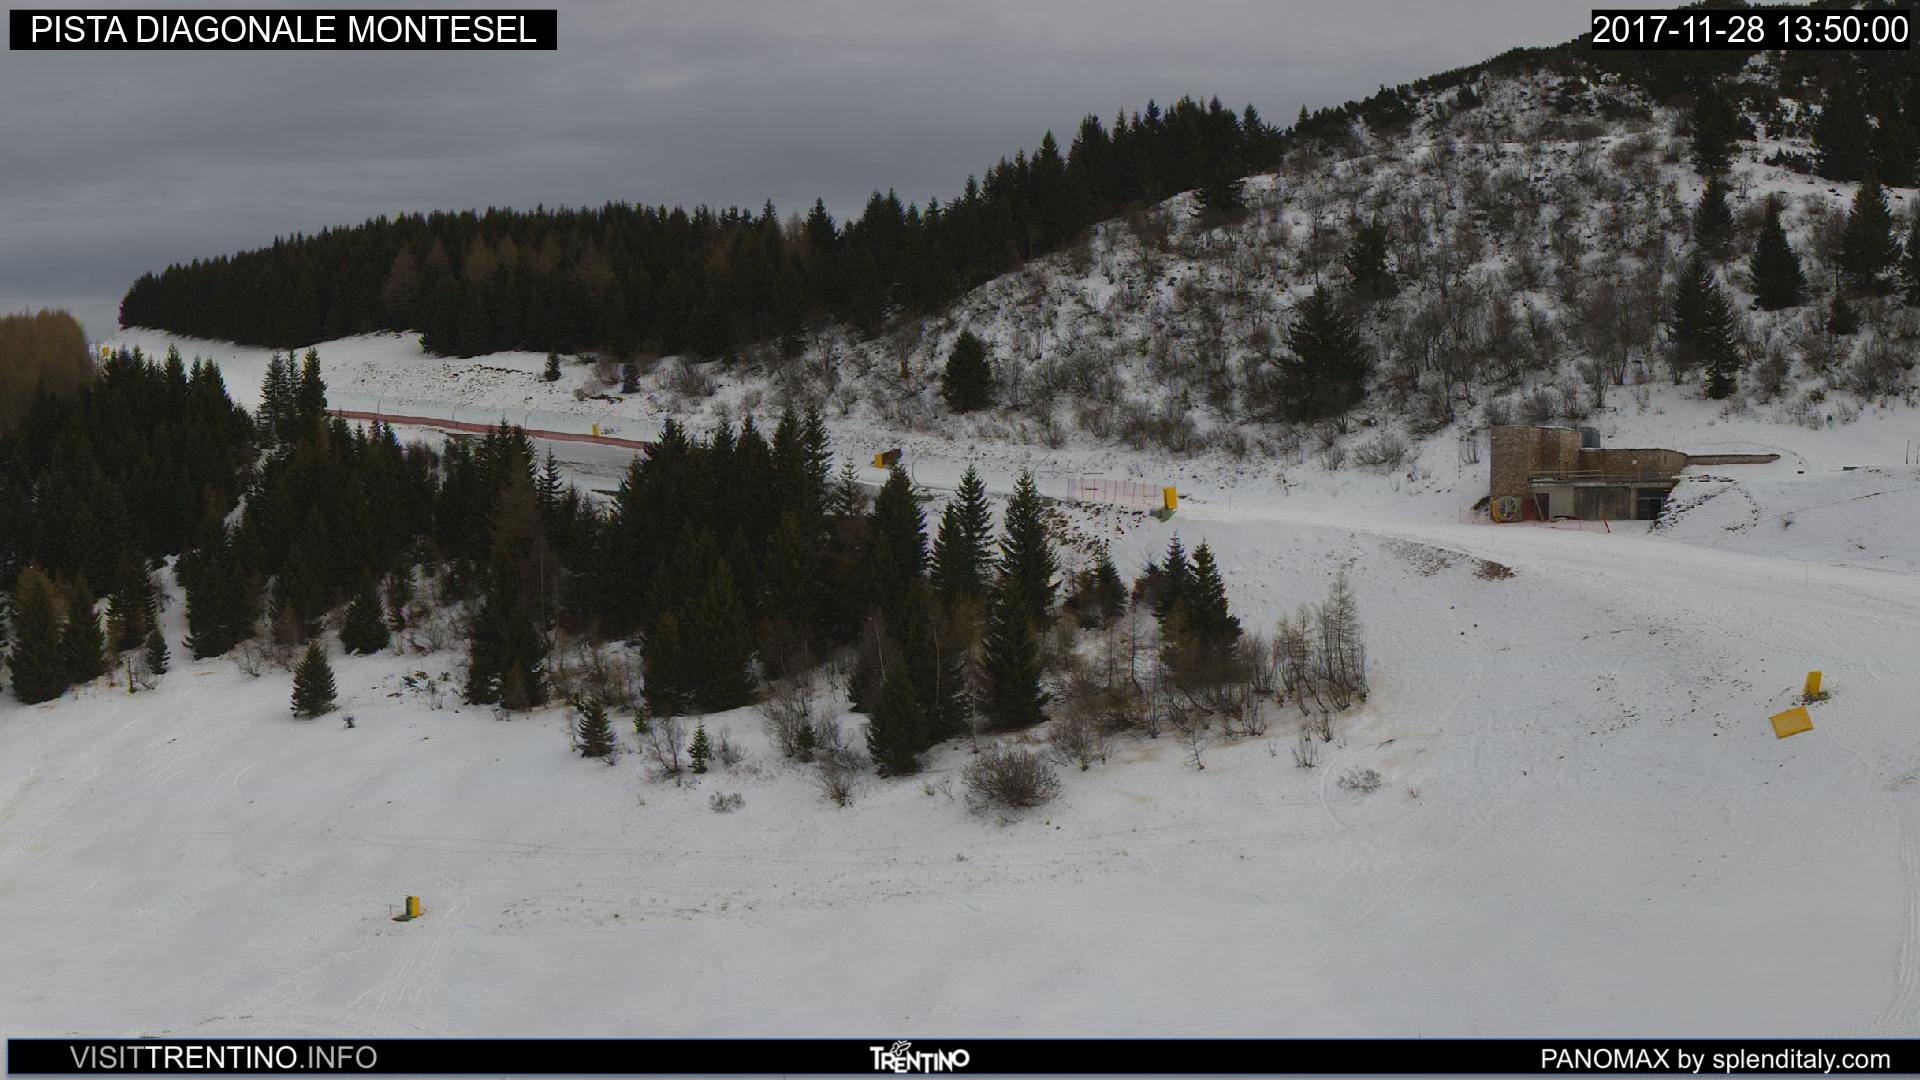 Webcam Bondone - Pista Montesel